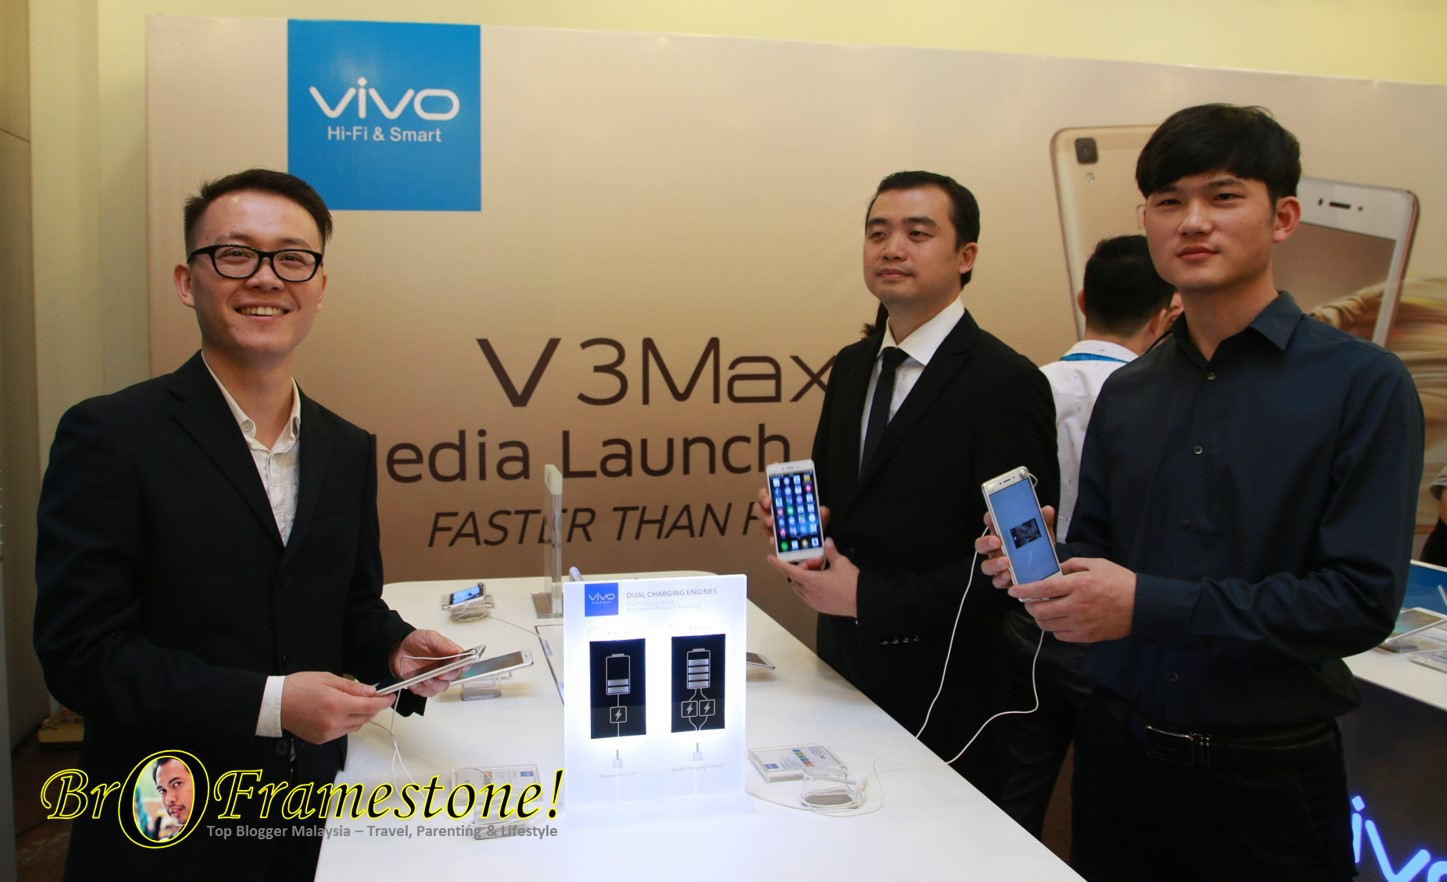 vivo officially launches V3Max in Malaysia